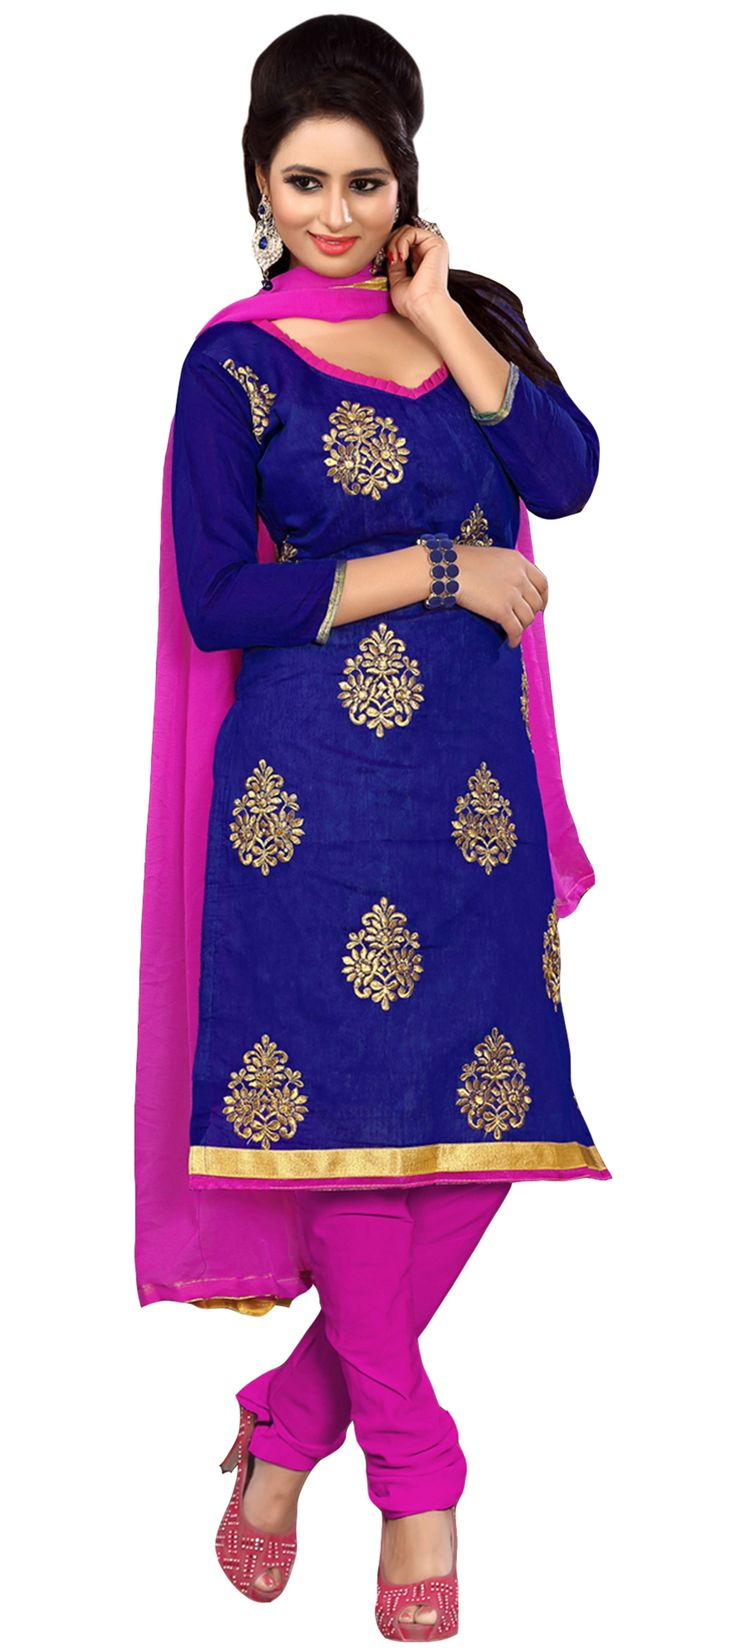 444261: Blue color family unstitched Cotton Salwar Kameez, Party Wear Salwar Kameez .